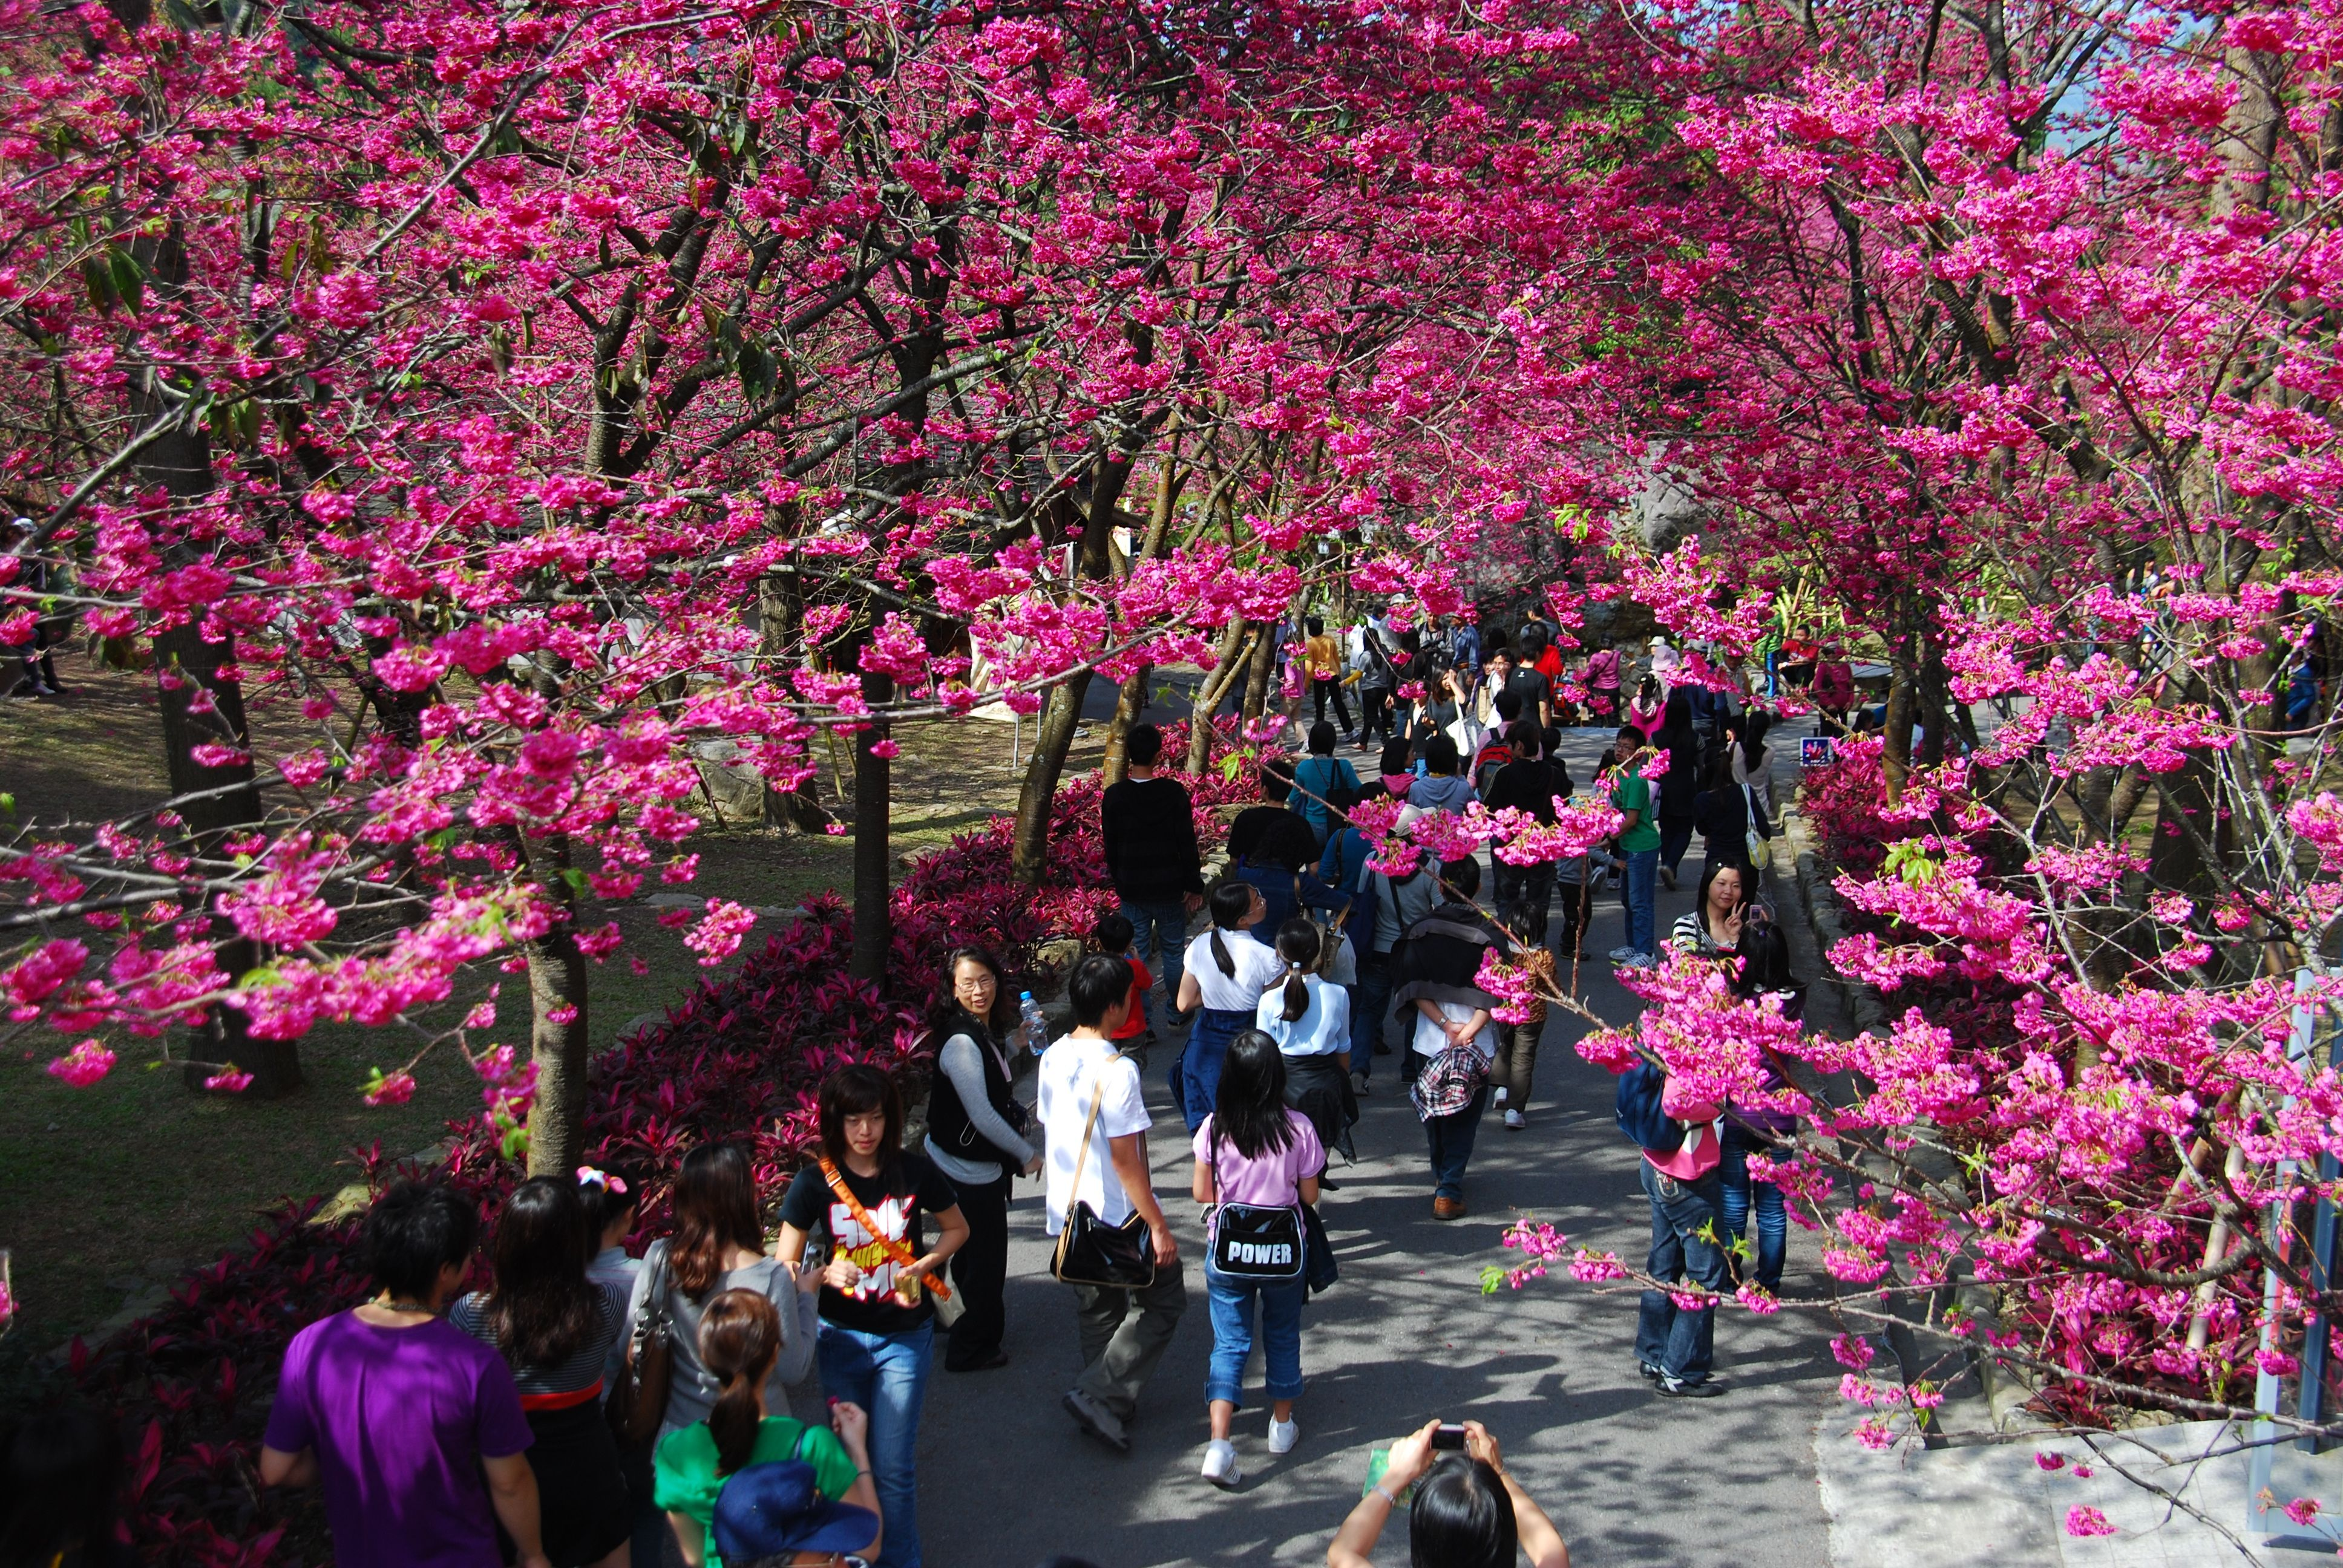 The Biggest Cherry Blossom Festival In Taiwan Cherry Blossom Festival Cherry Blossom Festival